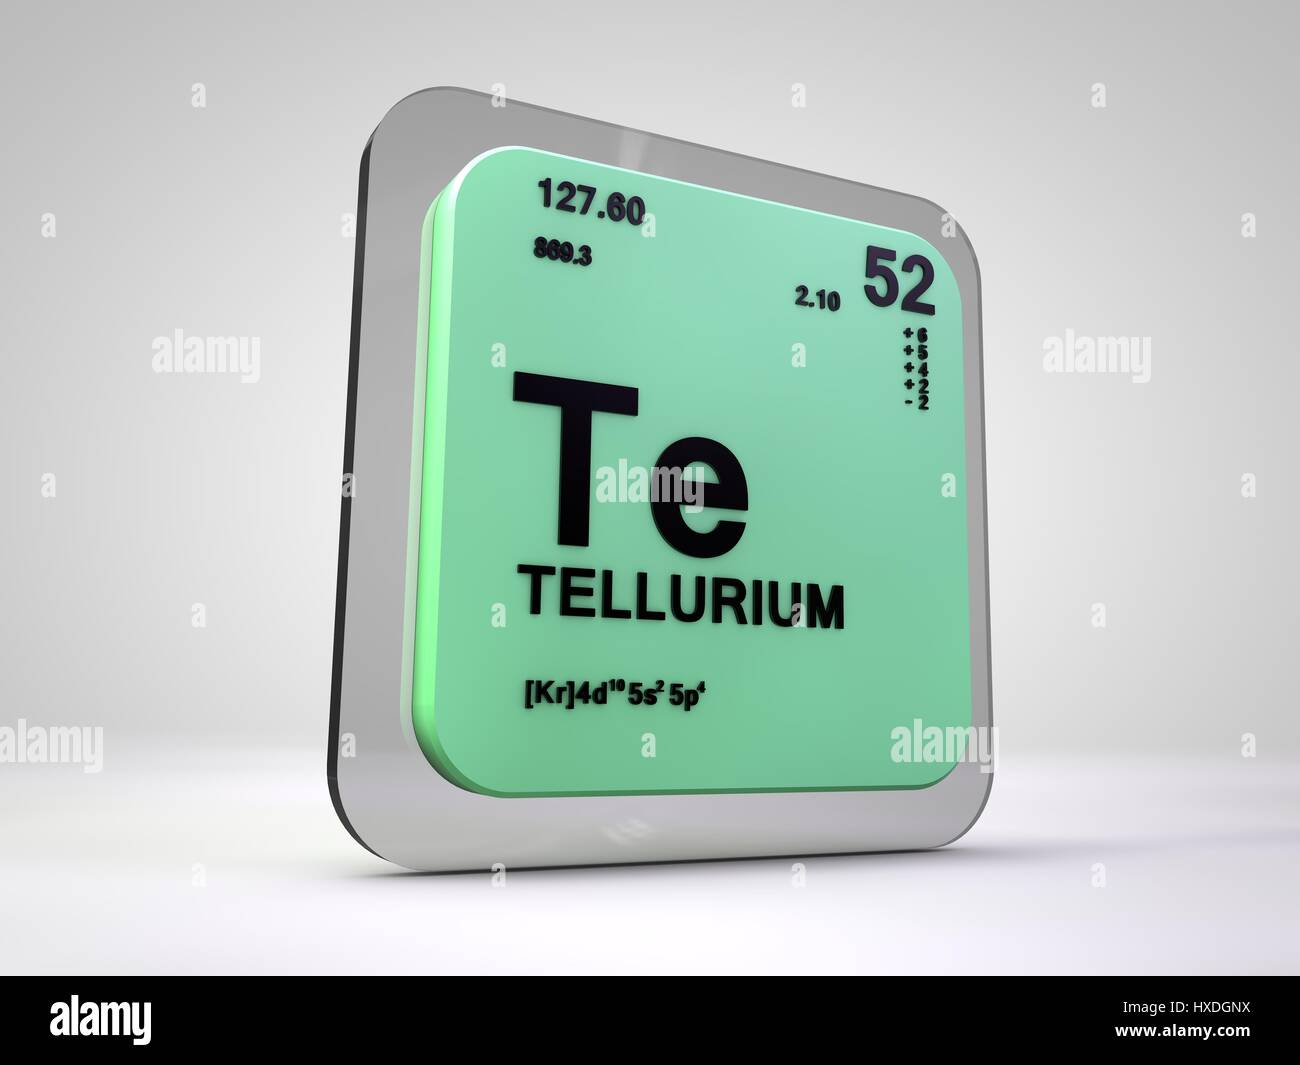 Tellurium te chemical element periodic table 3d render stock tellurium te chemical element periodic table 3d render urtaz Image collections